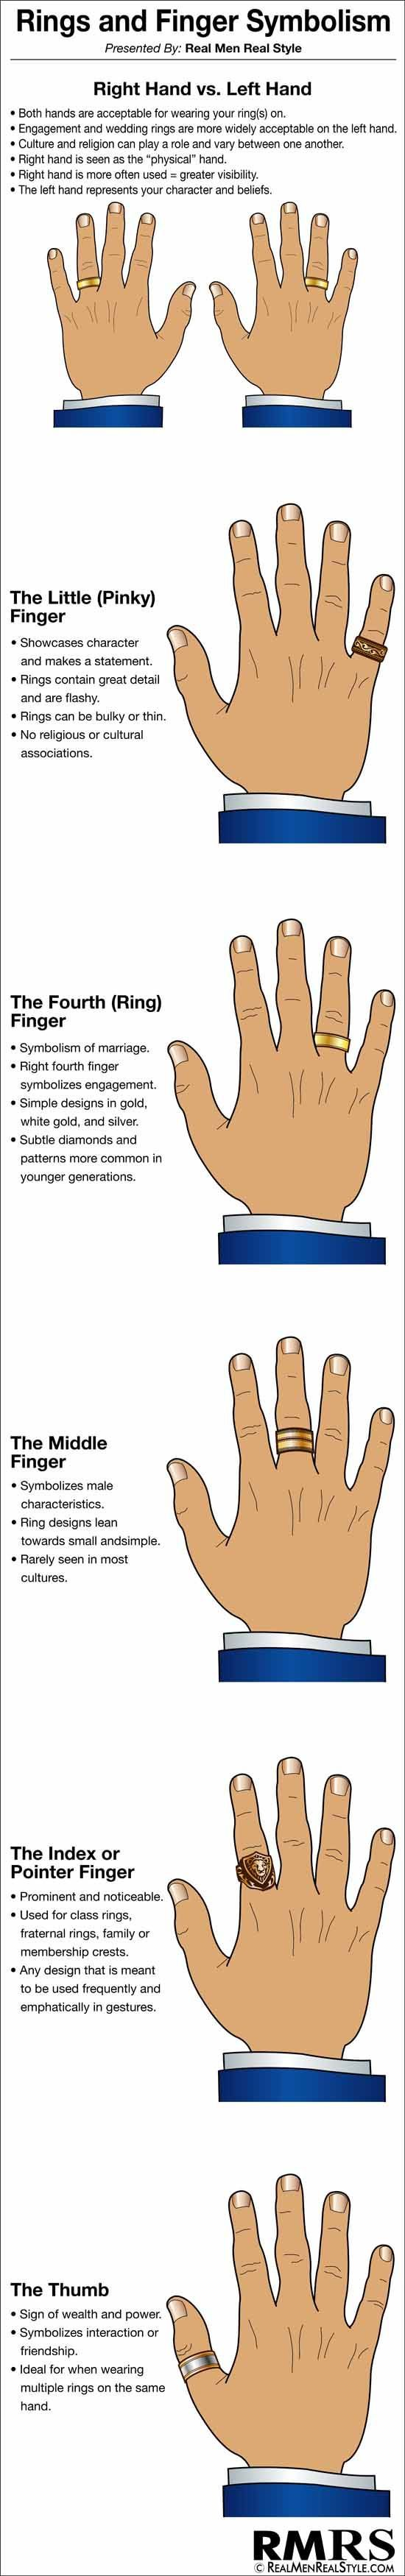 Fitness Wear Tired Of The Same Old Routine For Fitness Try These Fresh Ideas Click Image To Read More Details Mens Fashion Real Men Real Style Ring Finger